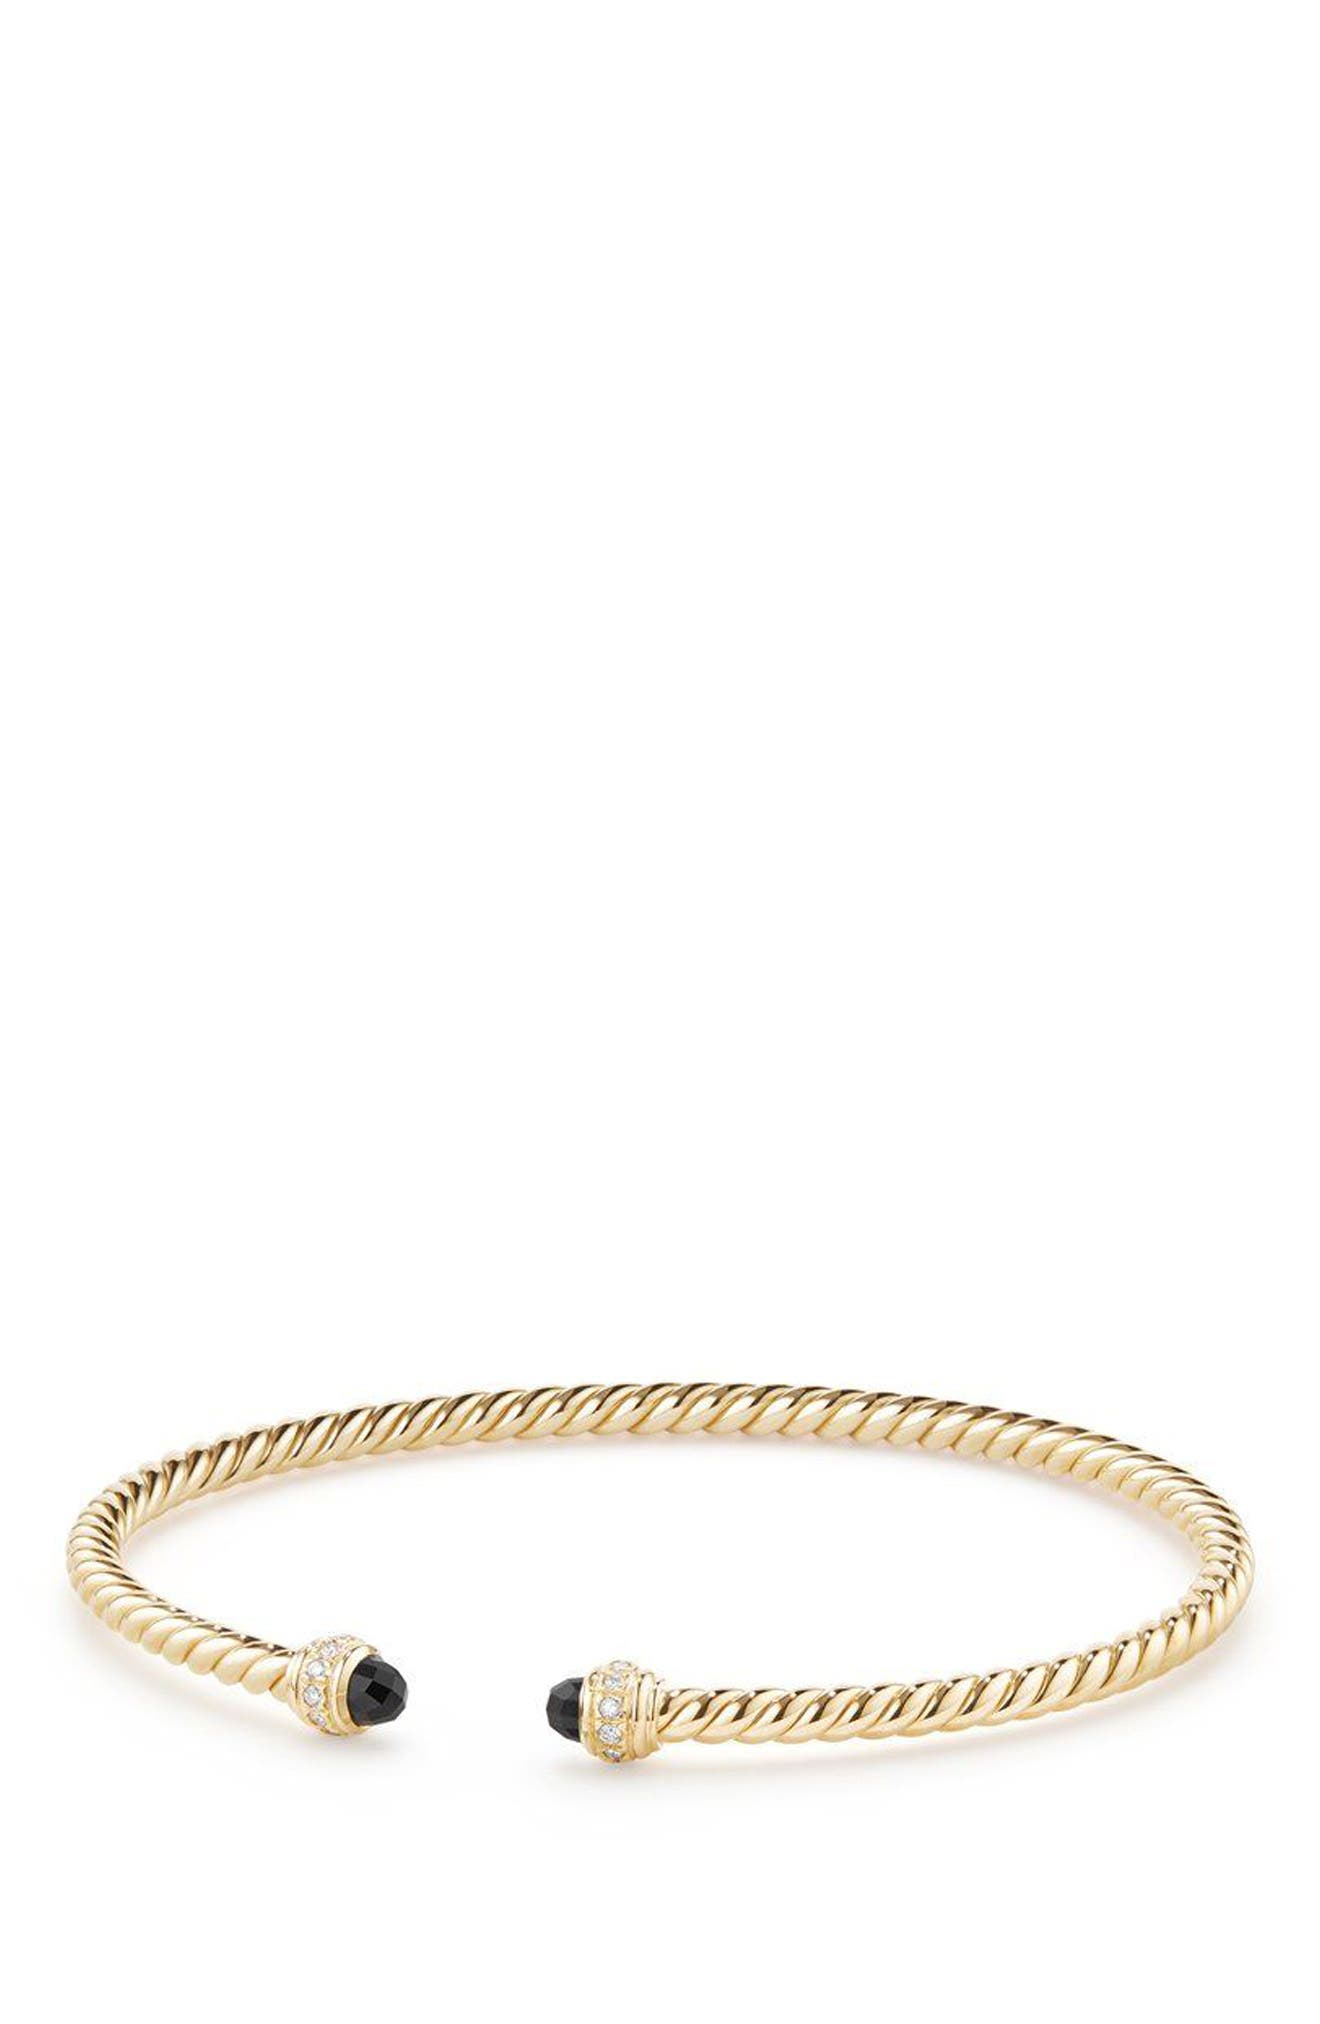 Cable Spira Bracelet in 18K Gold with Diamonds, 3mm,                             Main thumbnail 1, color,                             GOLD/ DIAMOND/ BLACK ONYX